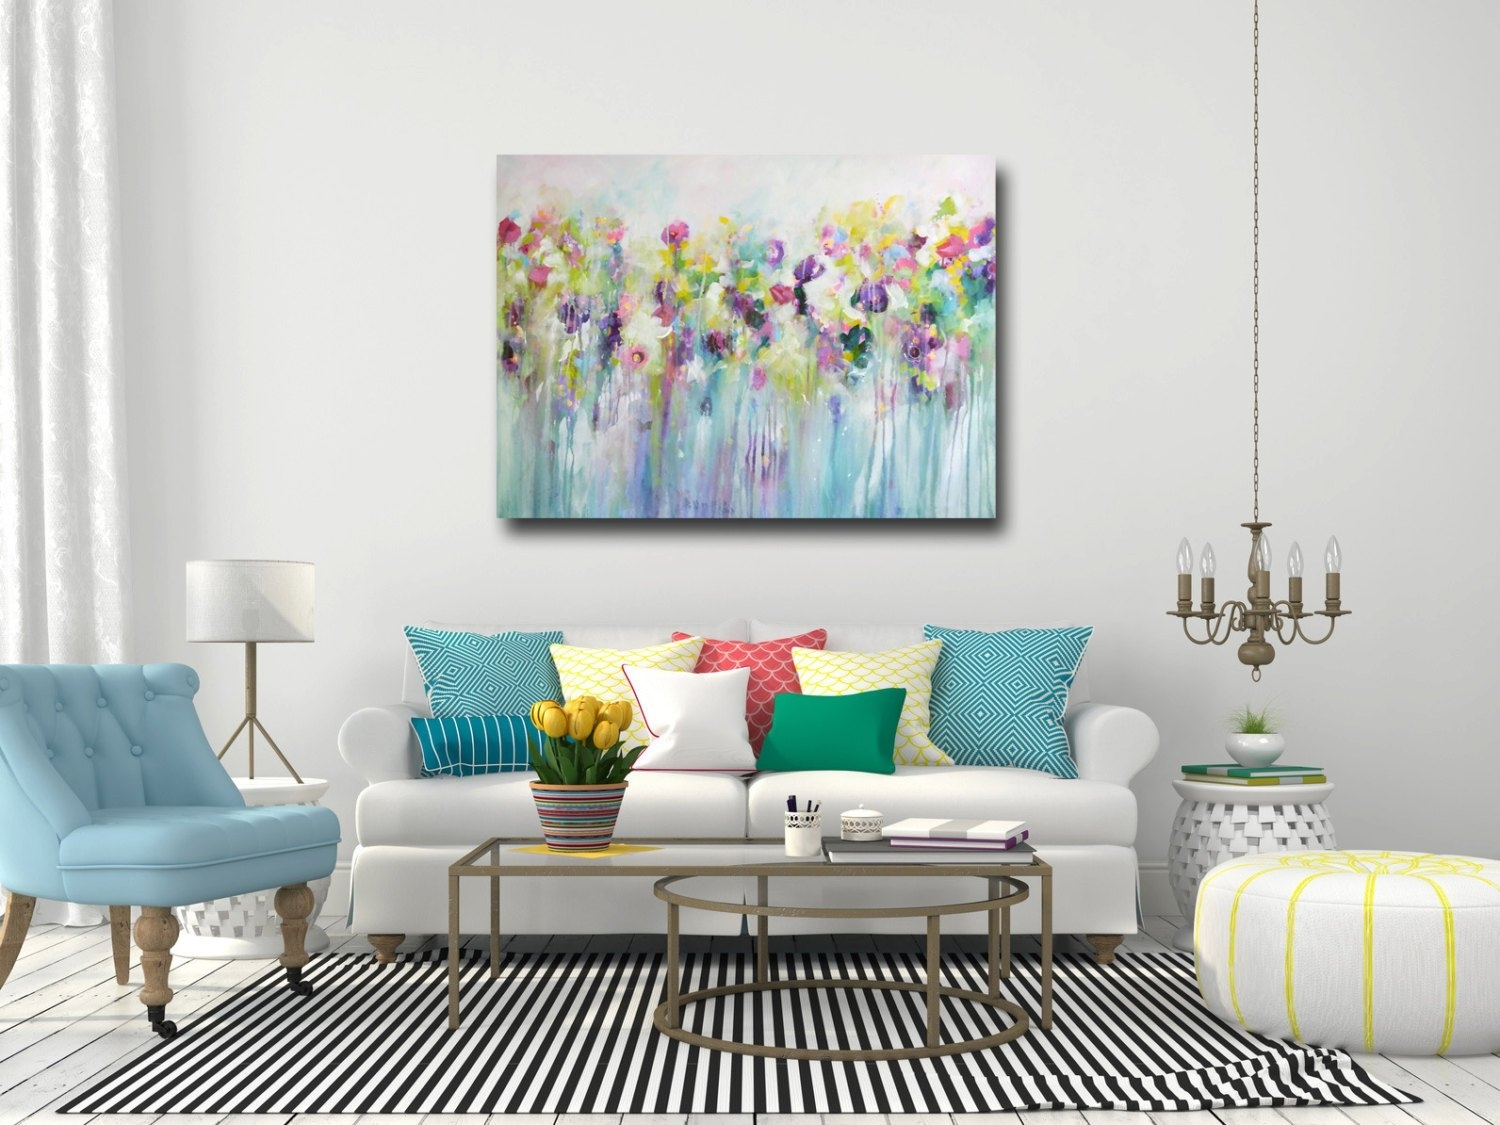 Large Wall Art Canvas Art Abstract Floral Canvas Print, Oversized intended for Abstract Oversized Canvas Wall Art (Image 14 of 20)